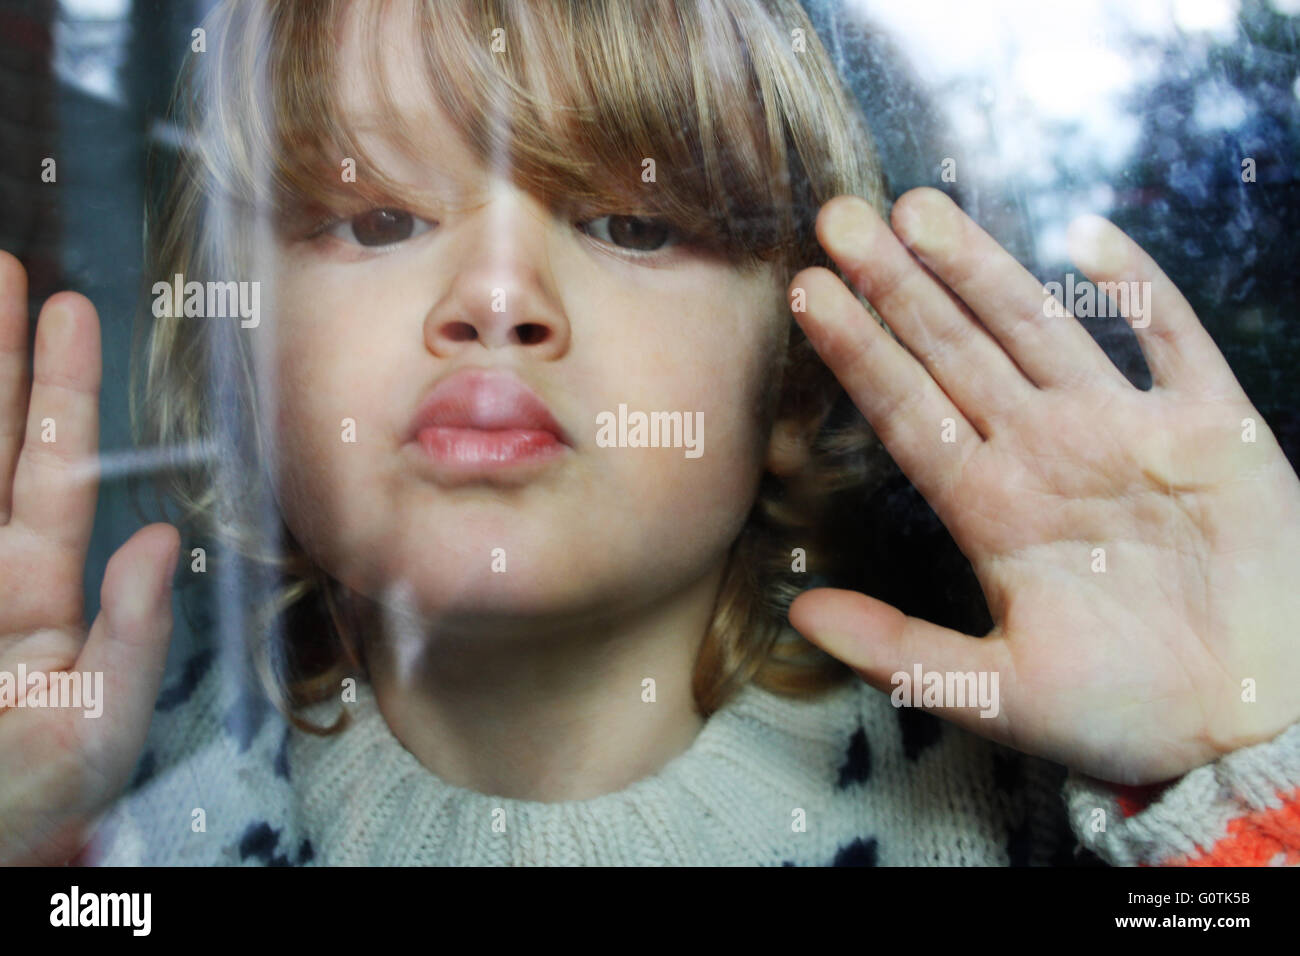 Lips Against The Glass.Pressing Against Glass Stock Photos Pressing Against Glass